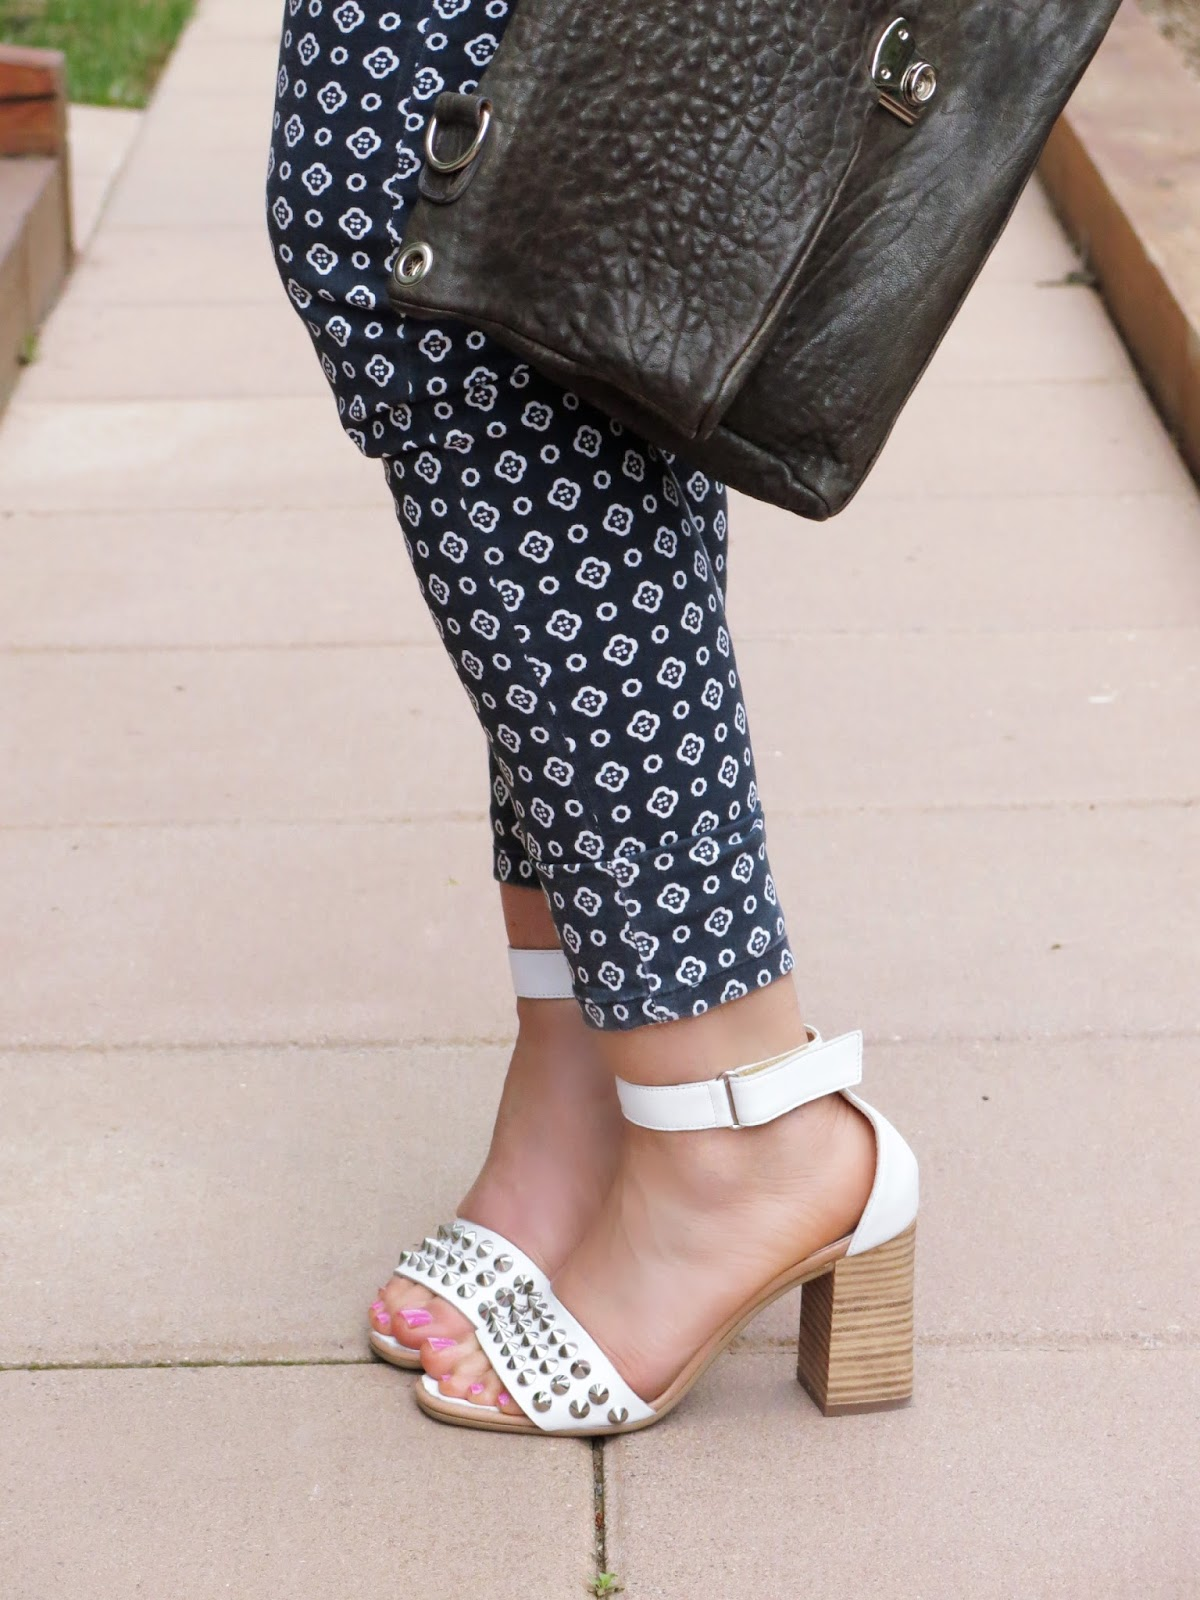 patterned jeans, white ankle-strap sandals, slate blue clutch